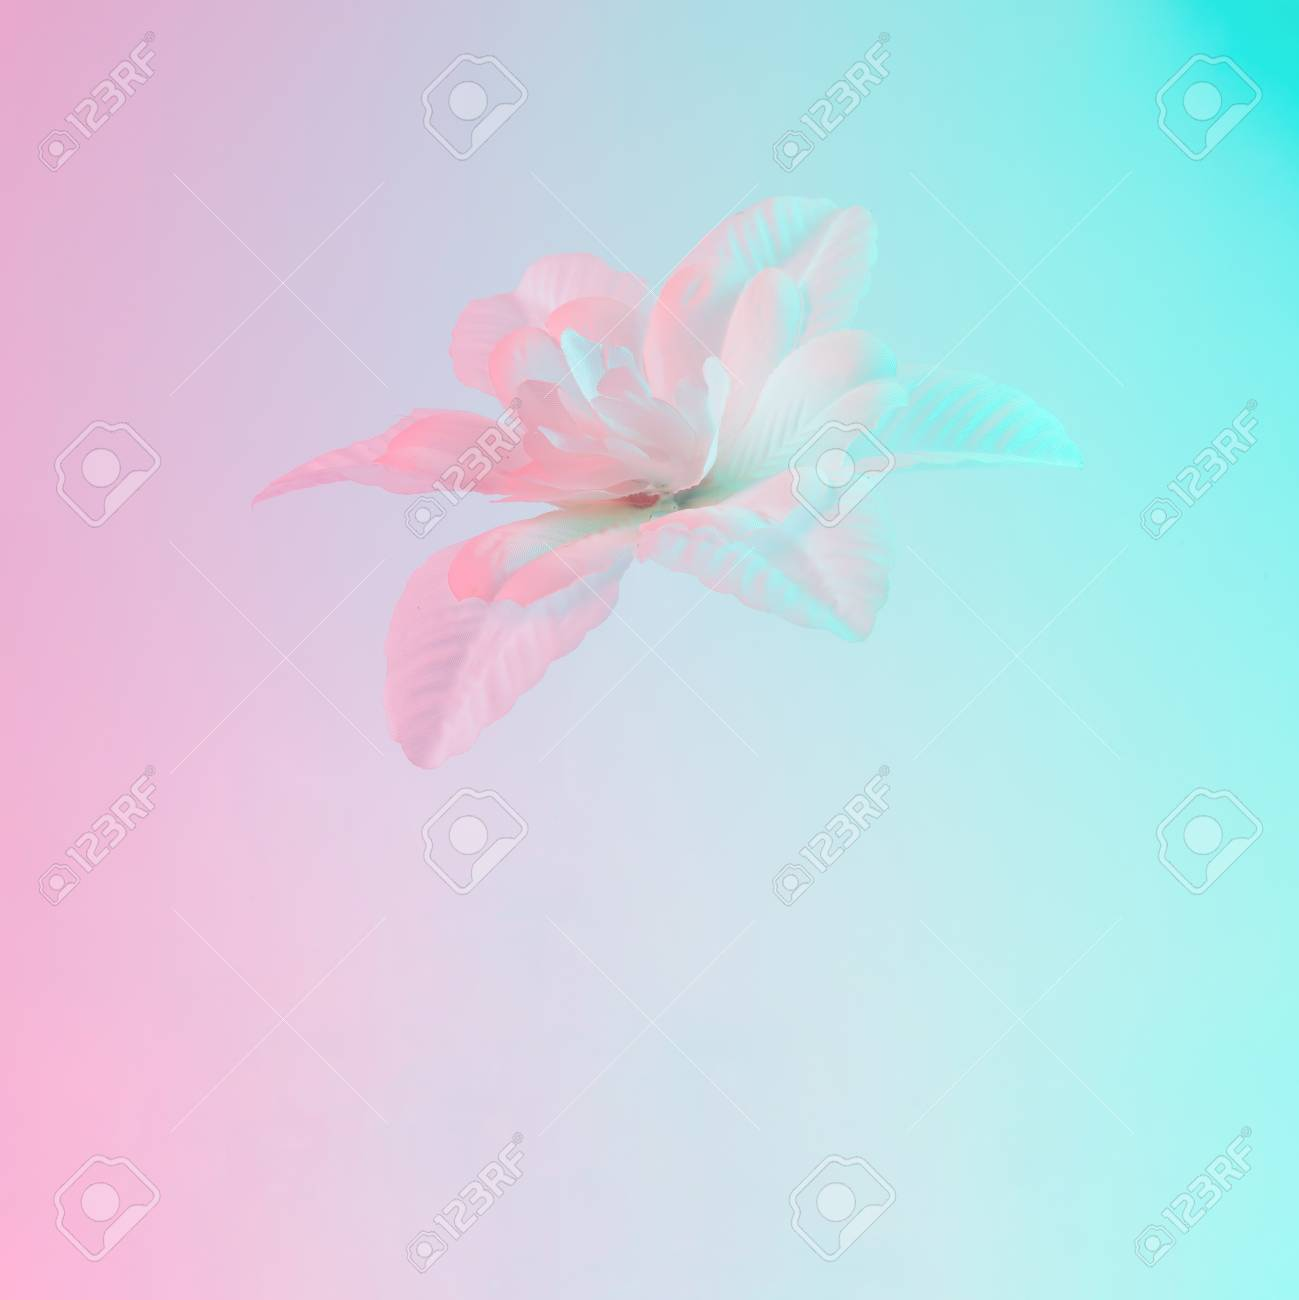 White flower in vibrant bold gradient holographic colors concept stock photo white flower in vibrant bold gradient holographic colors concept art minimal surrealism mightylinksfo Images